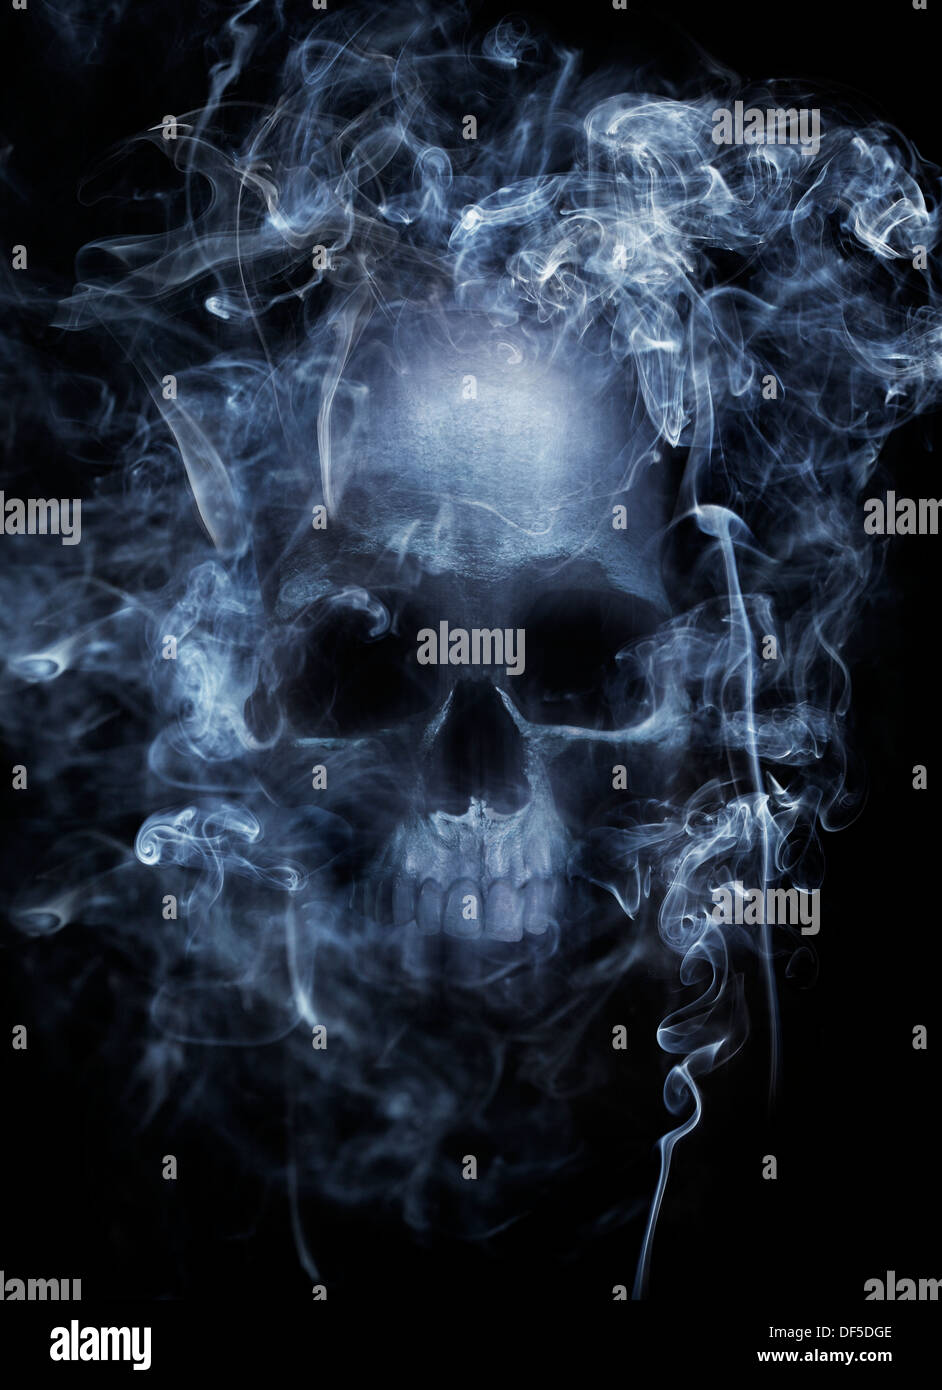 Photo montage of a human skull surrounded by cigarette smoke. - Stock Image